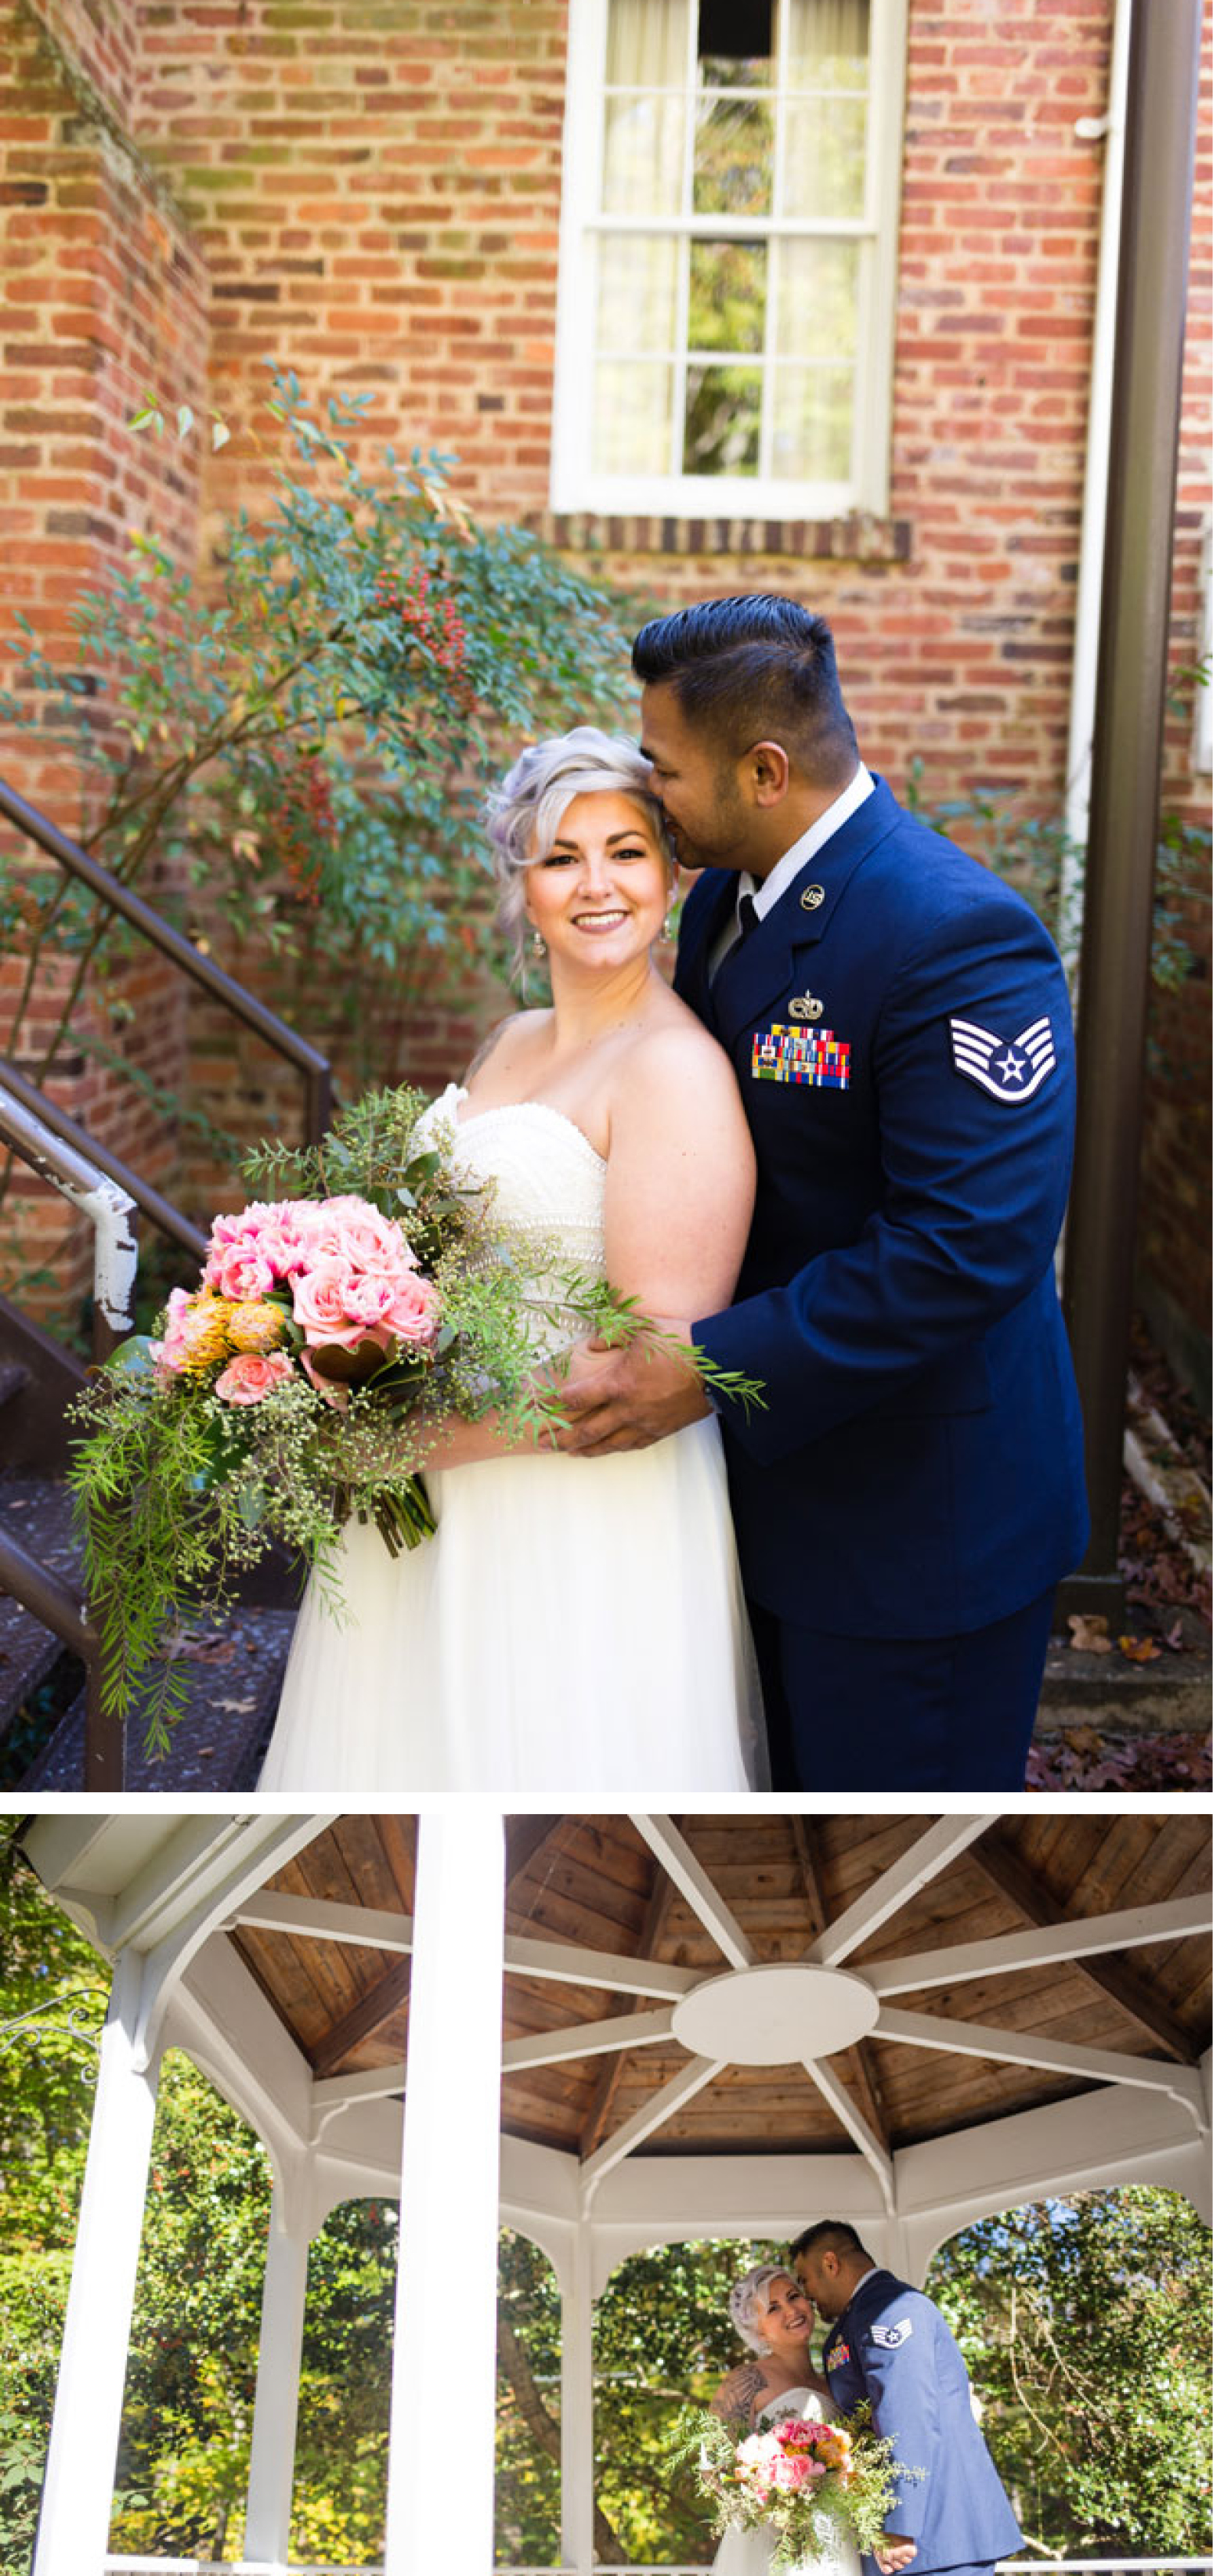 Raspberry-and-Gold-Vow-Renewal_Styled-Shoot-DC-Wedding6.jpg